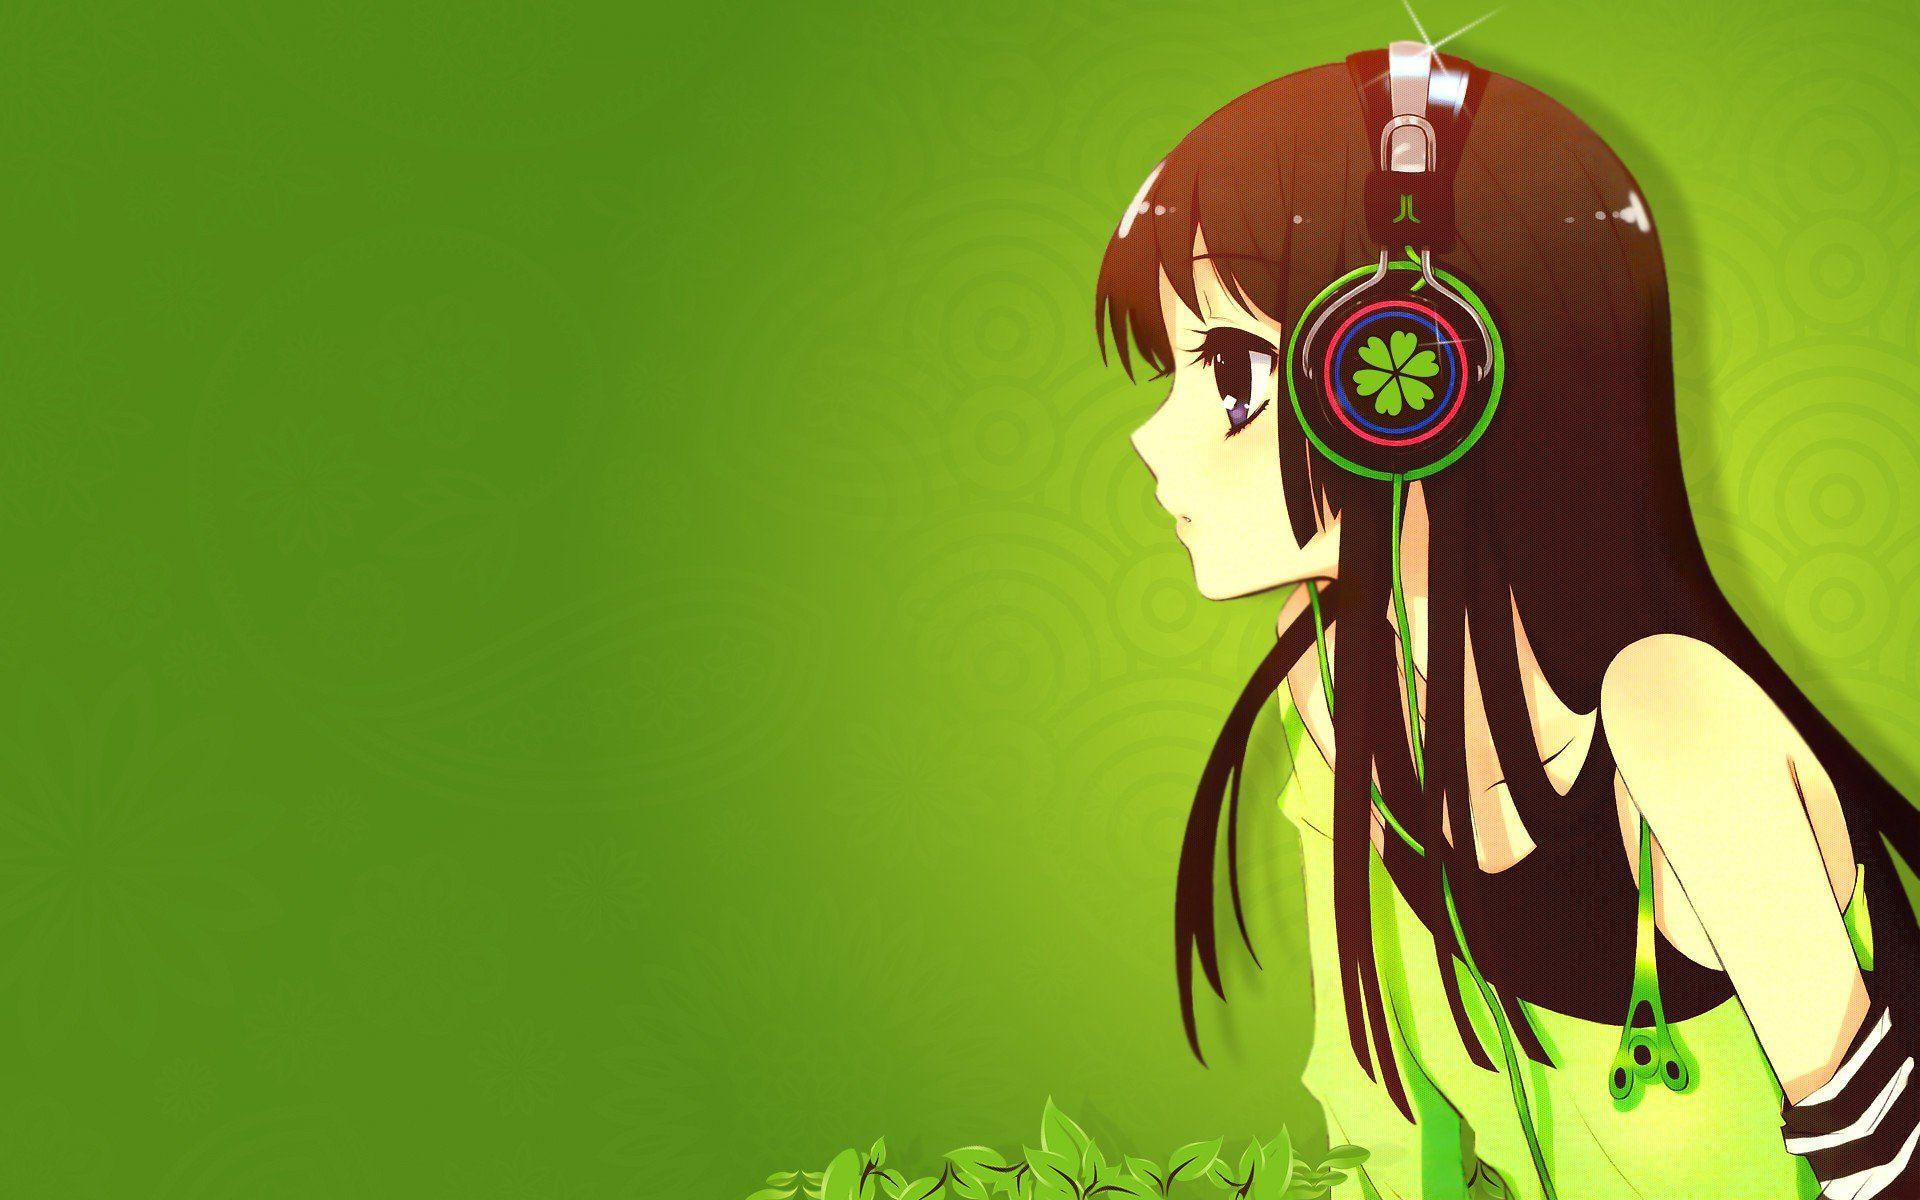 Cute Anime Girl With Headphones Wallpapers HD Id